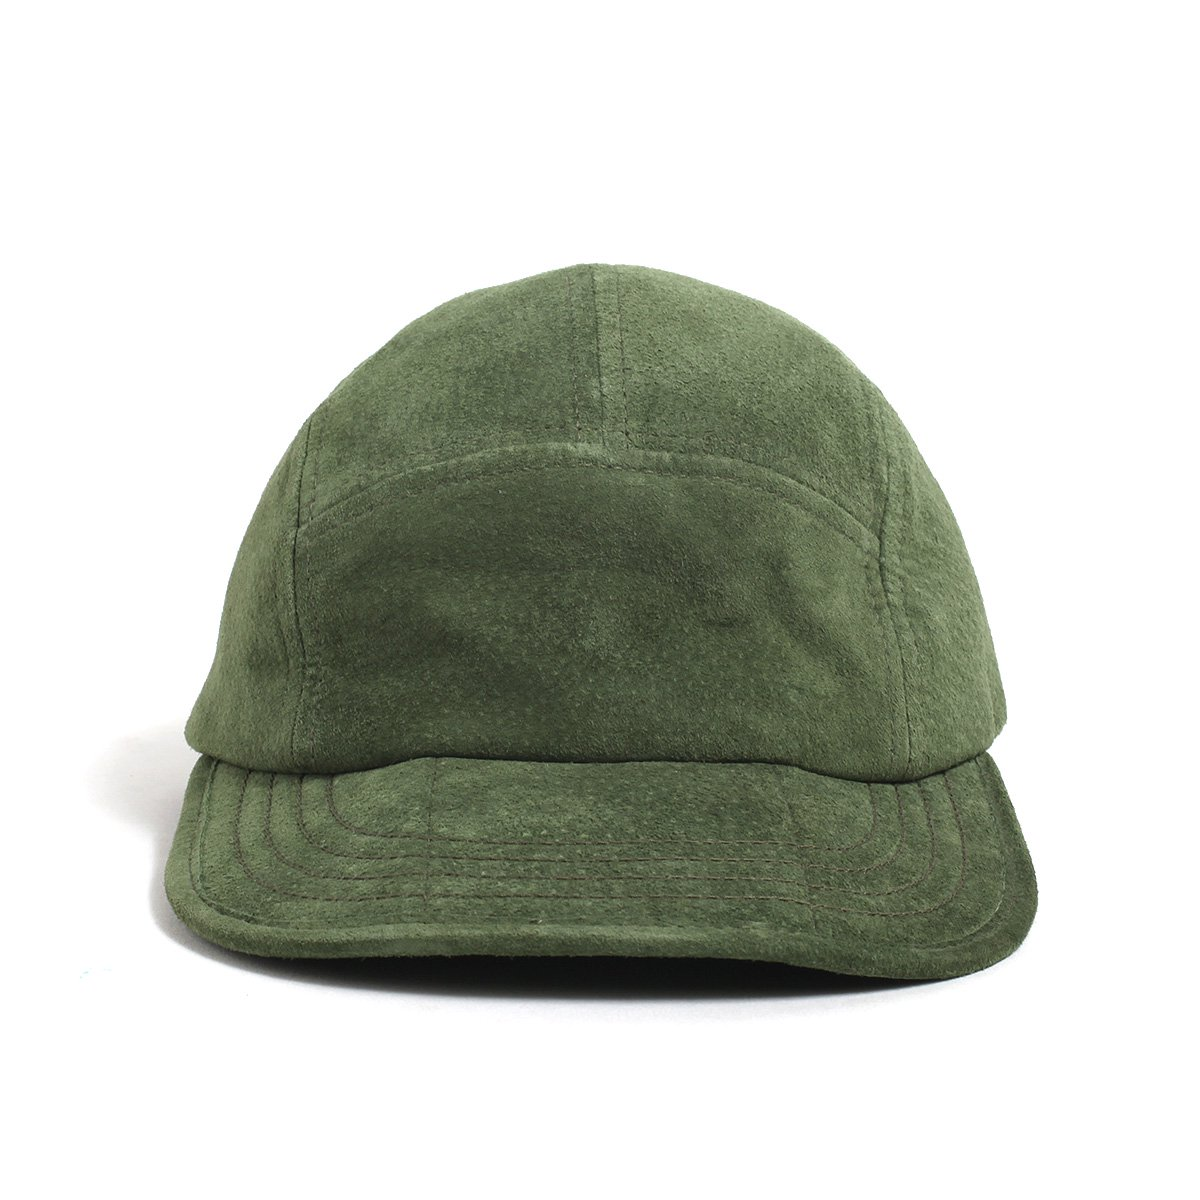 PIG SUEDE BILLS JETCAP 詳細画像1